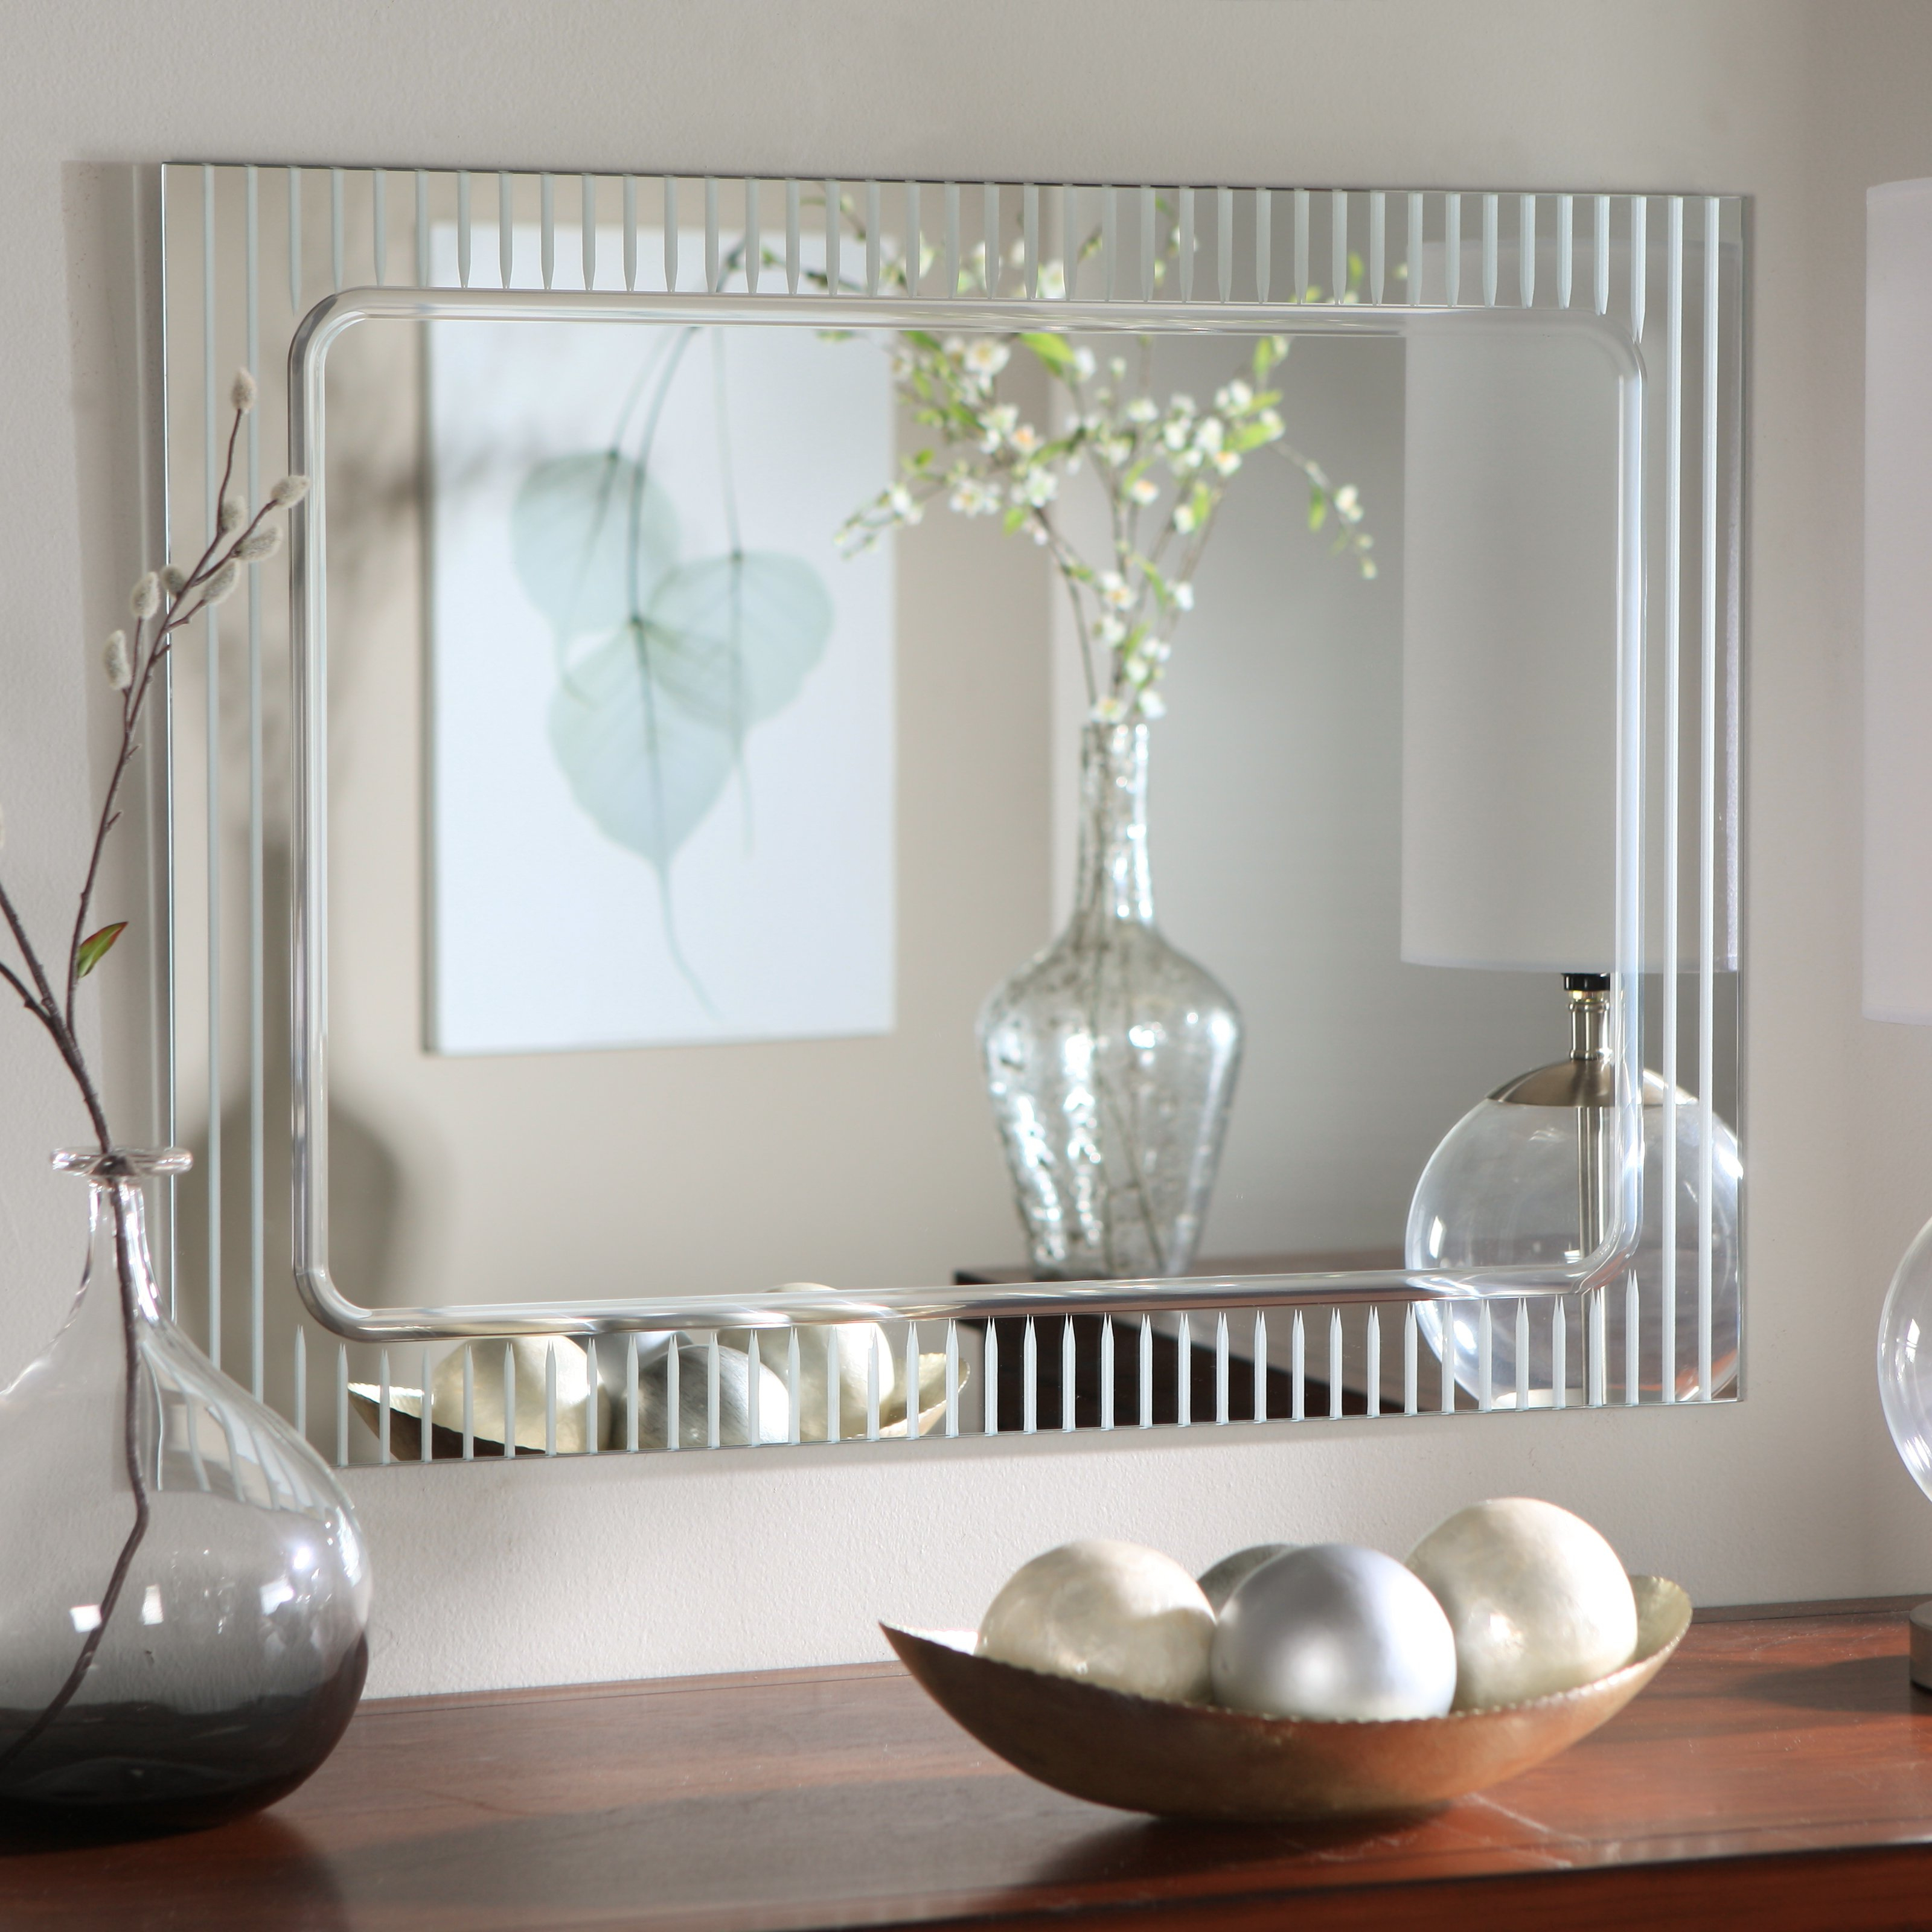 Preferred Decoration Cool Arched Mirror Design Ideas With Rustic Traditional Throughout Cool Wall Mirrors (View 3 of 20)